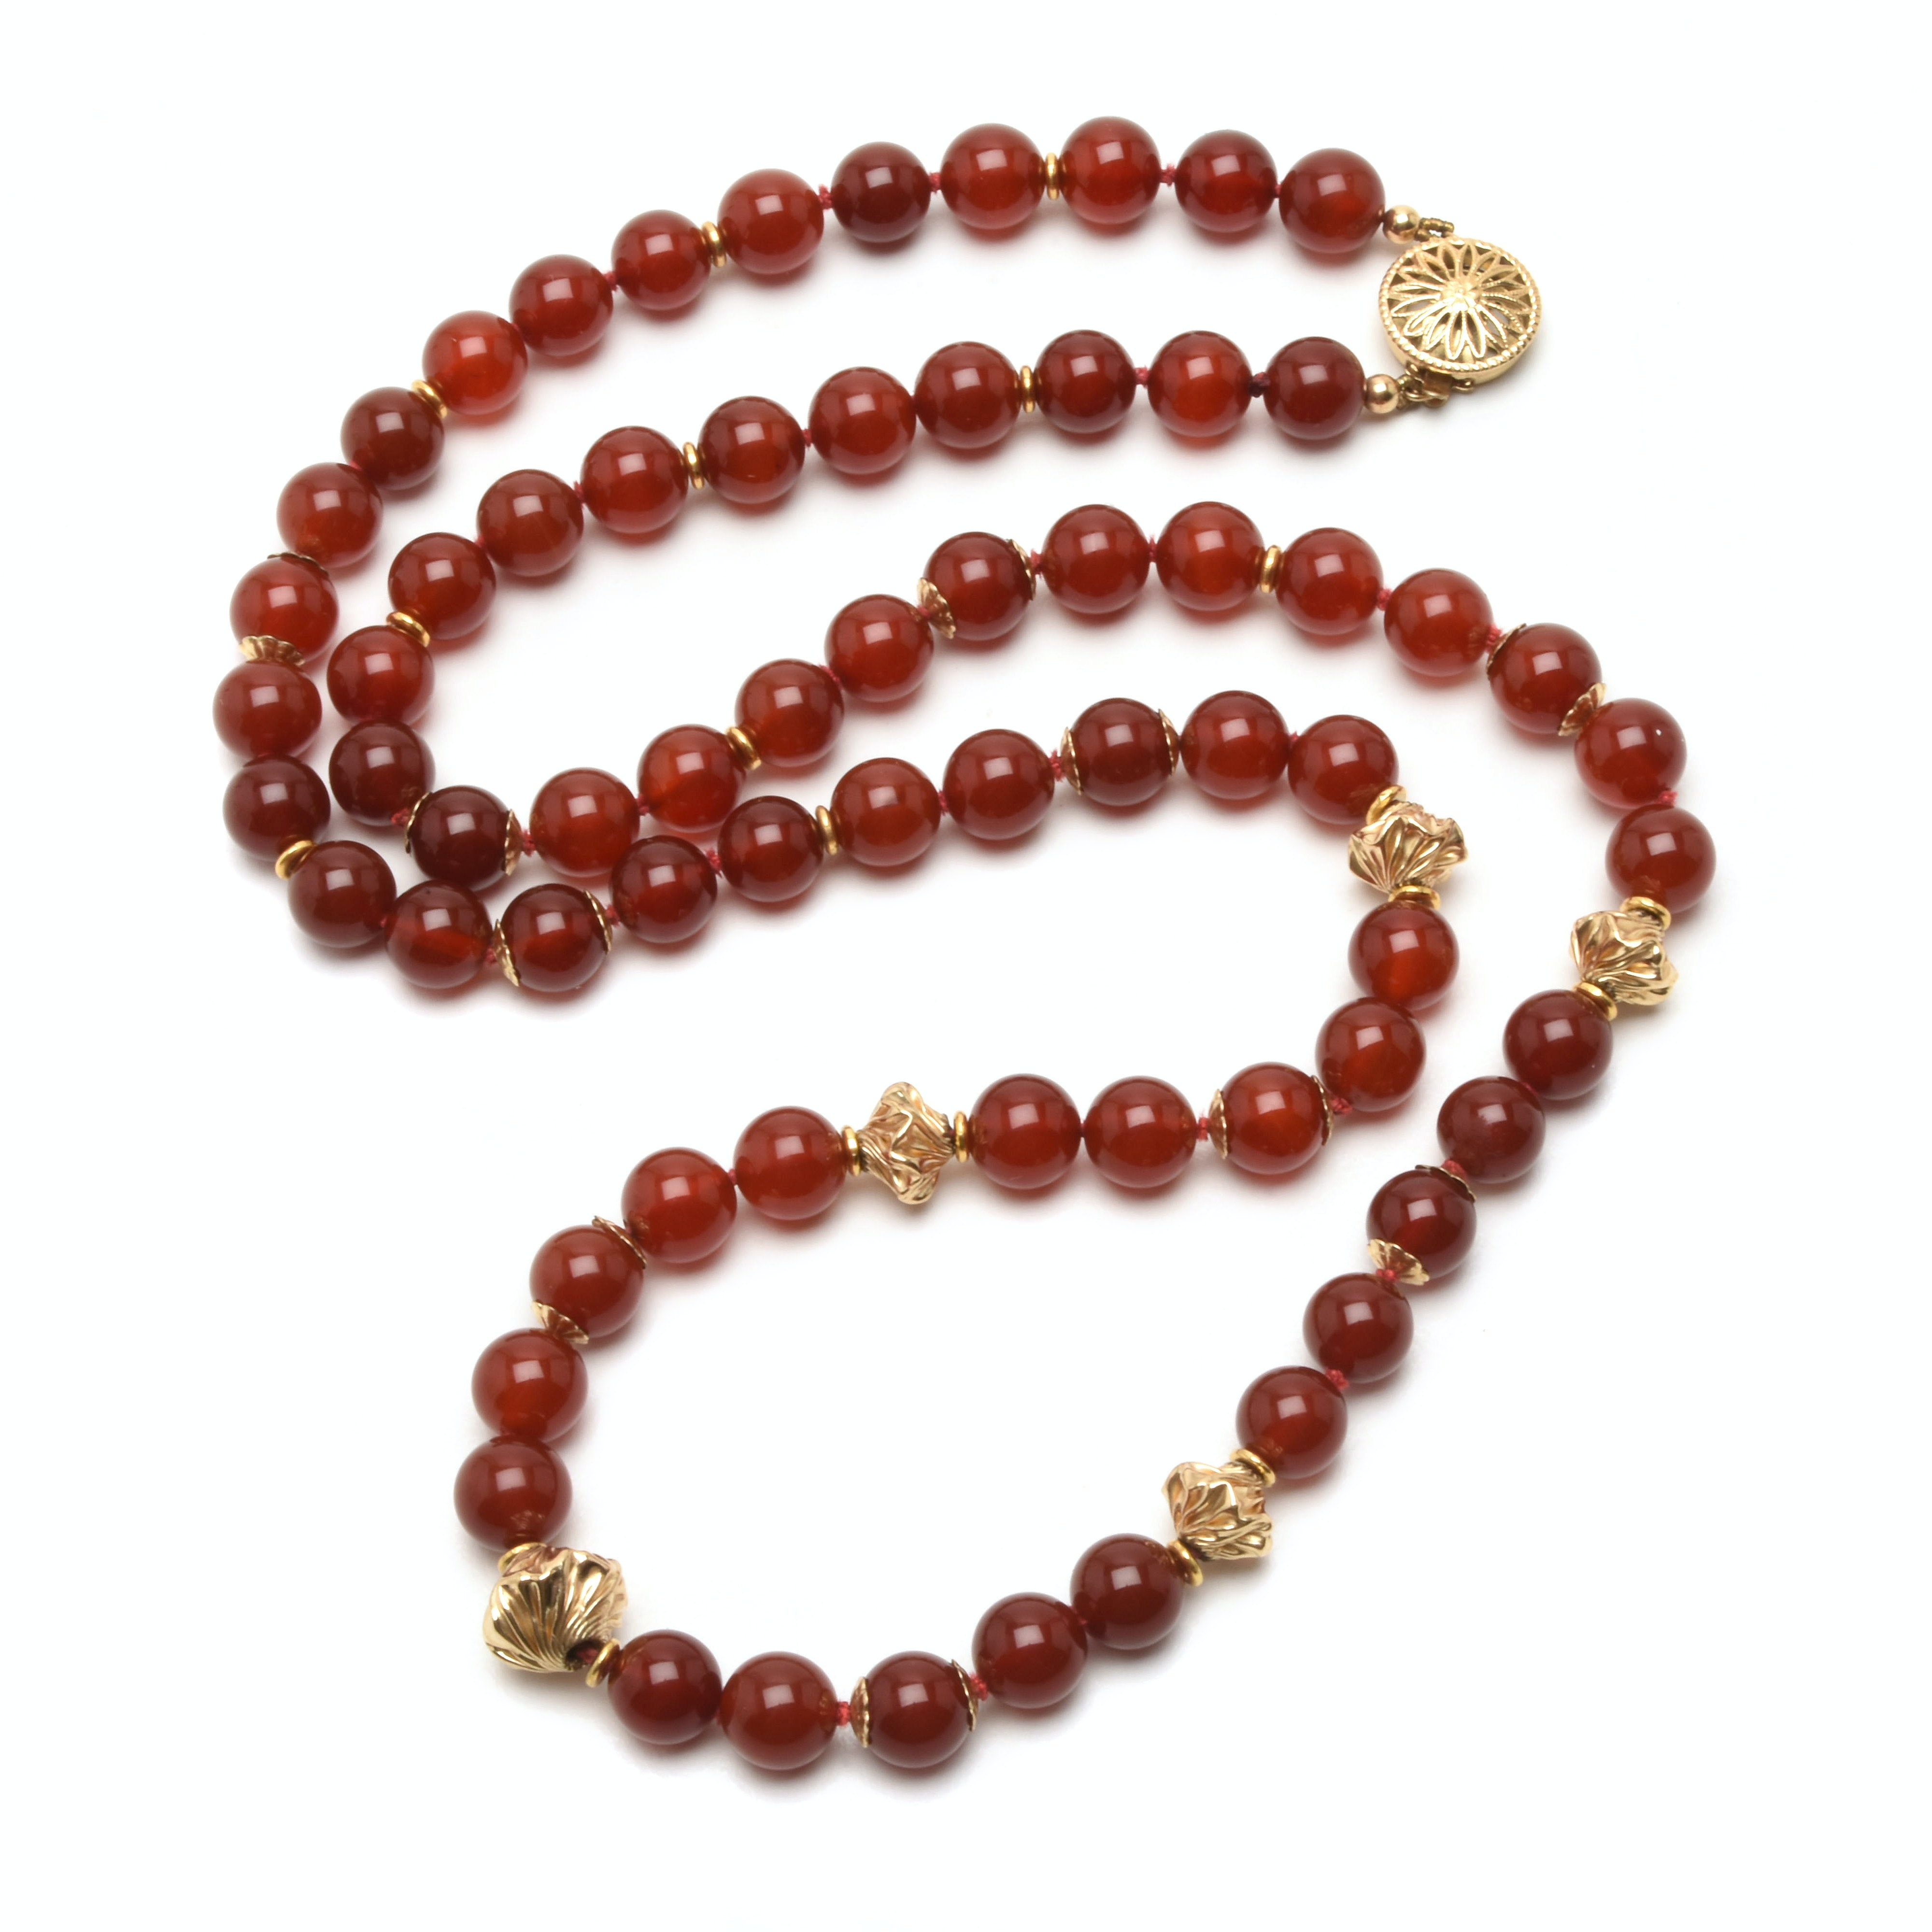 Single Strand Carnelian Necklace with Gold Filled Clasp